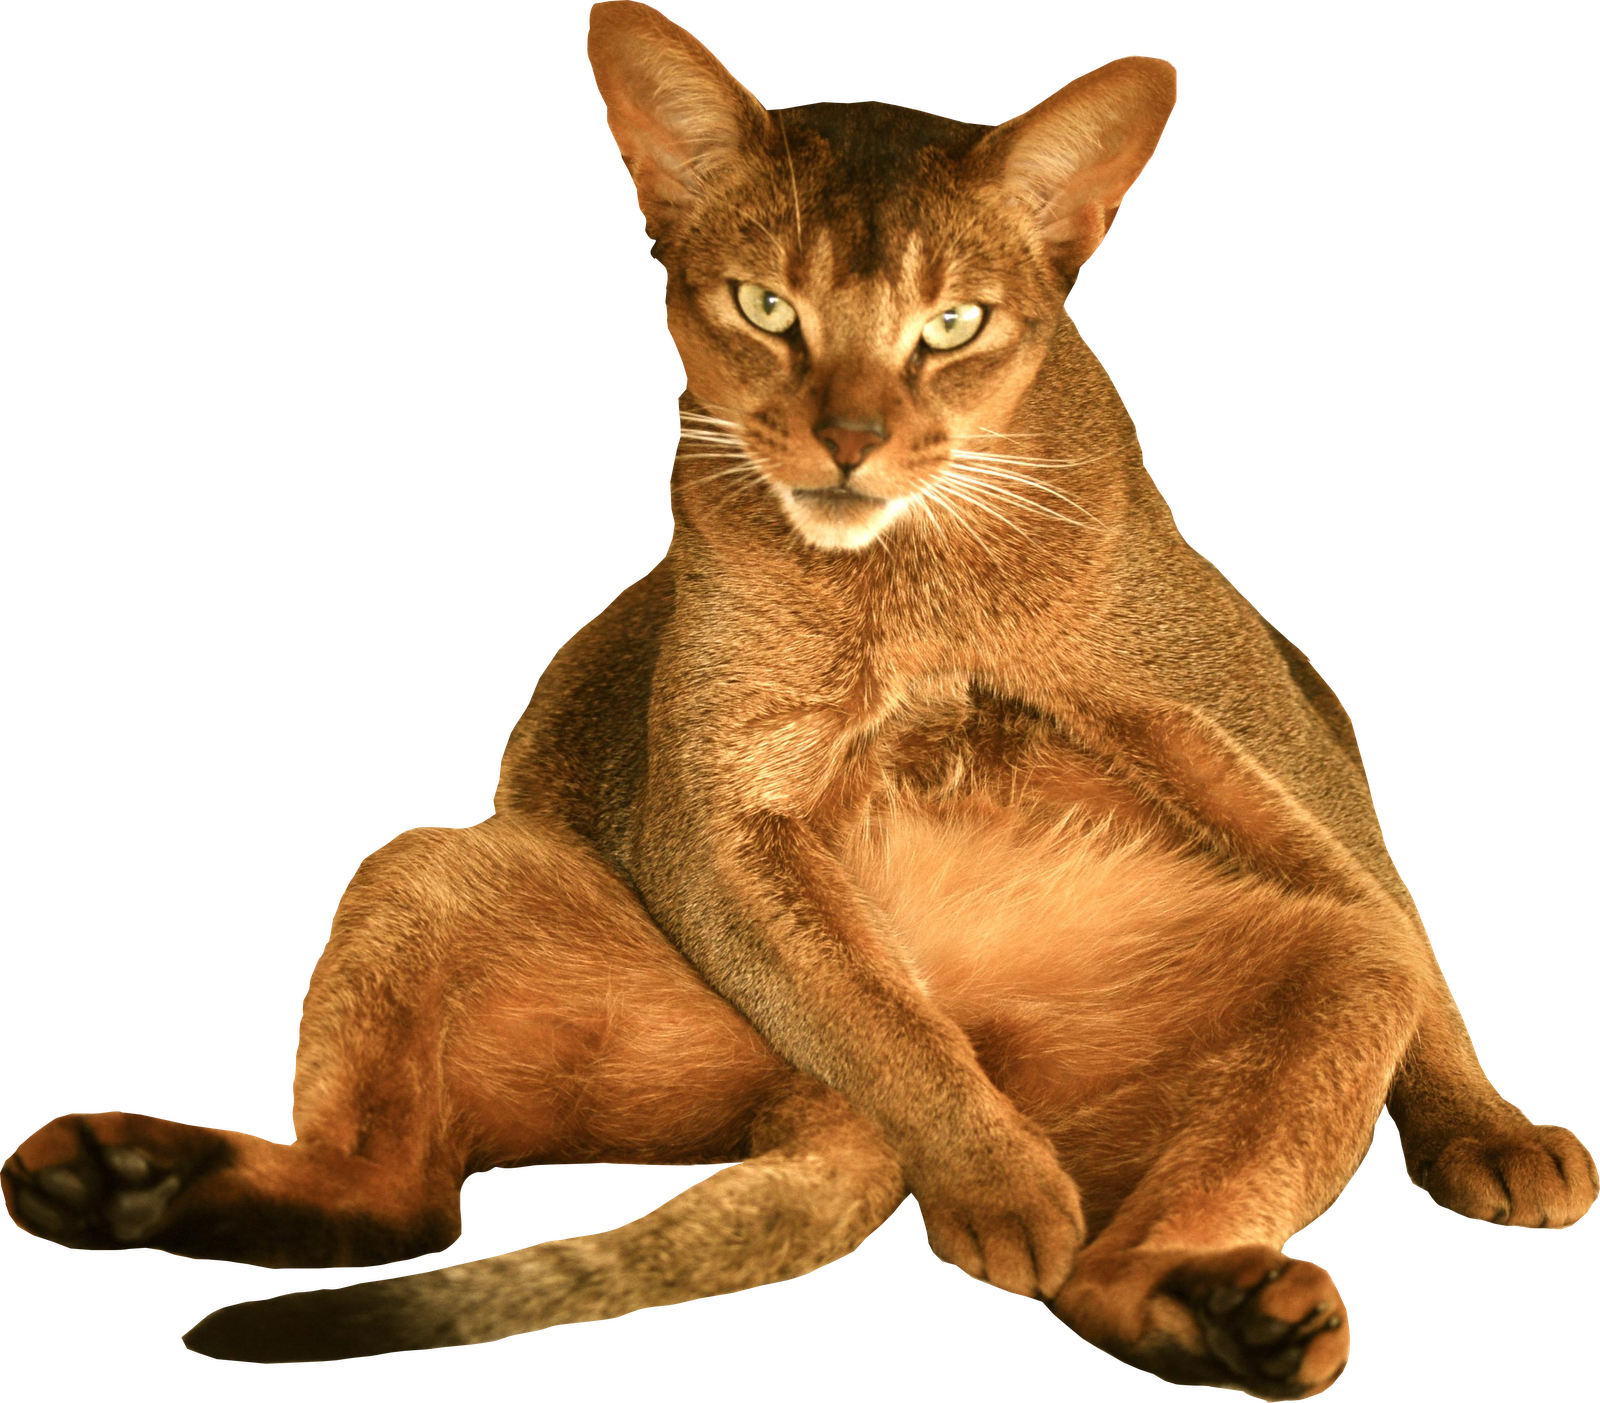 Kitty transparent bg. Cat png pictures free